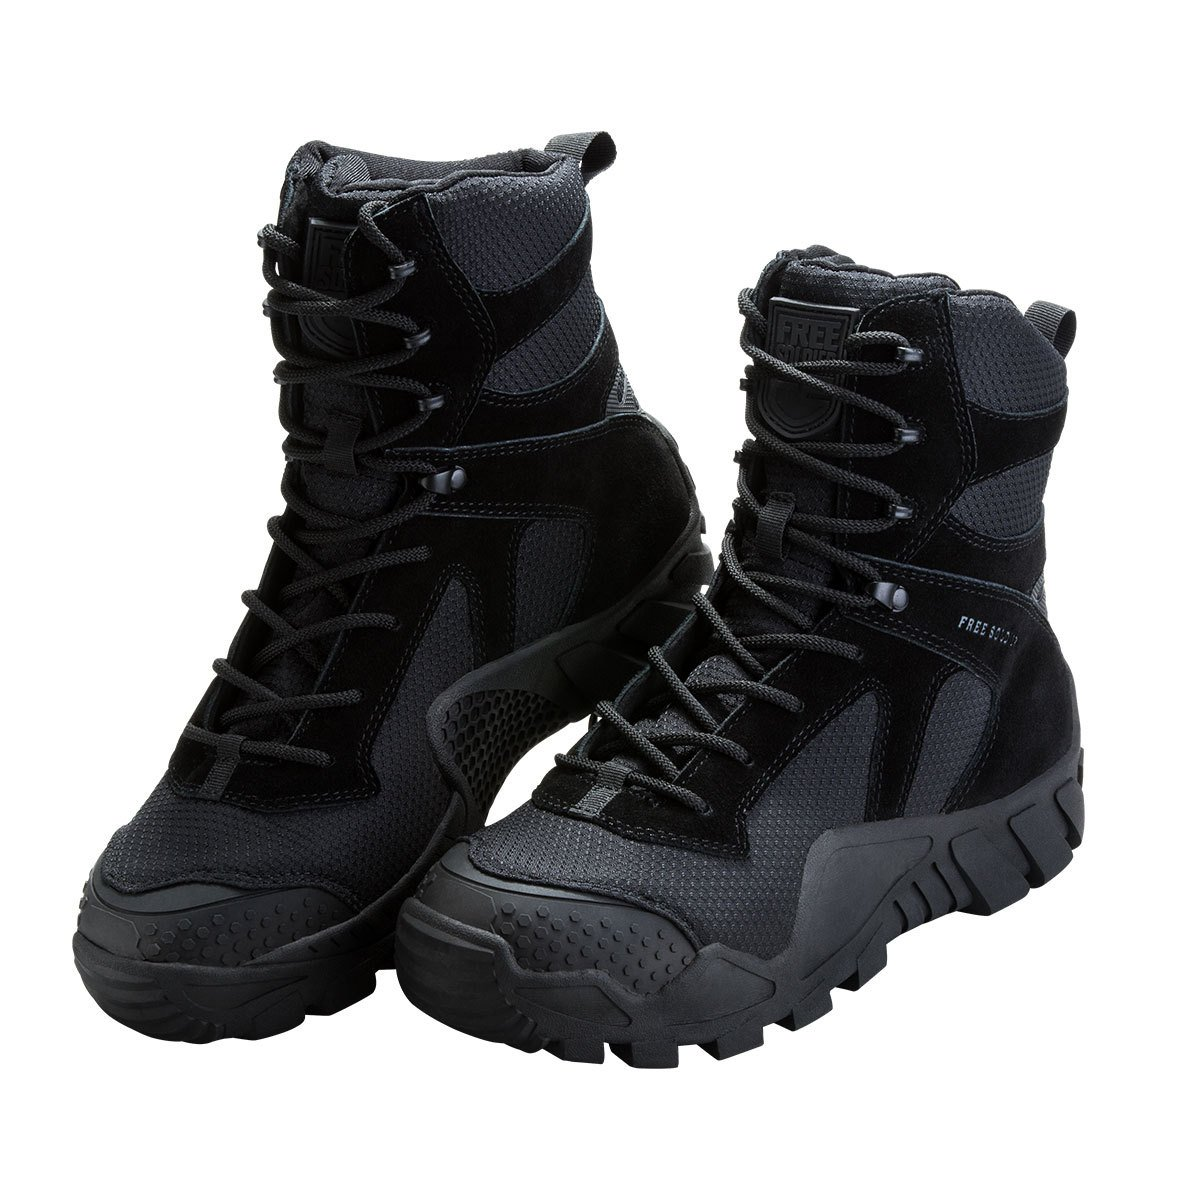 FREE SOLDIER Men's Boots All Terrain Hiking Shoes Suede Leather Winter Tactical Boots (Black, 10)